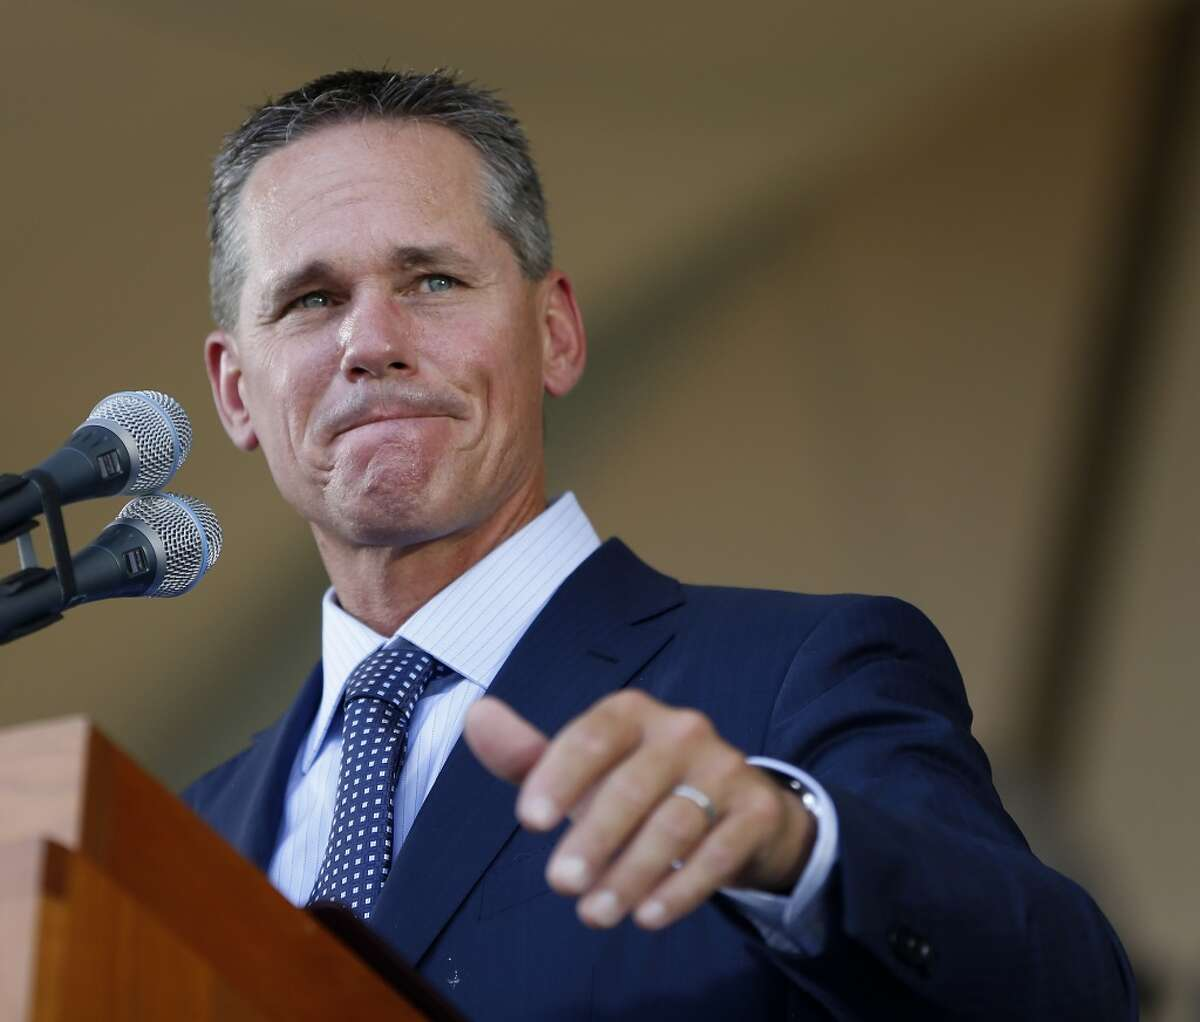 Craig Biggio waves to Matt Galante during the Hall of Fame induction ceremony on the grounds at Clark Sports Center on Sunday, July 26, 2015, in Cooperstown.